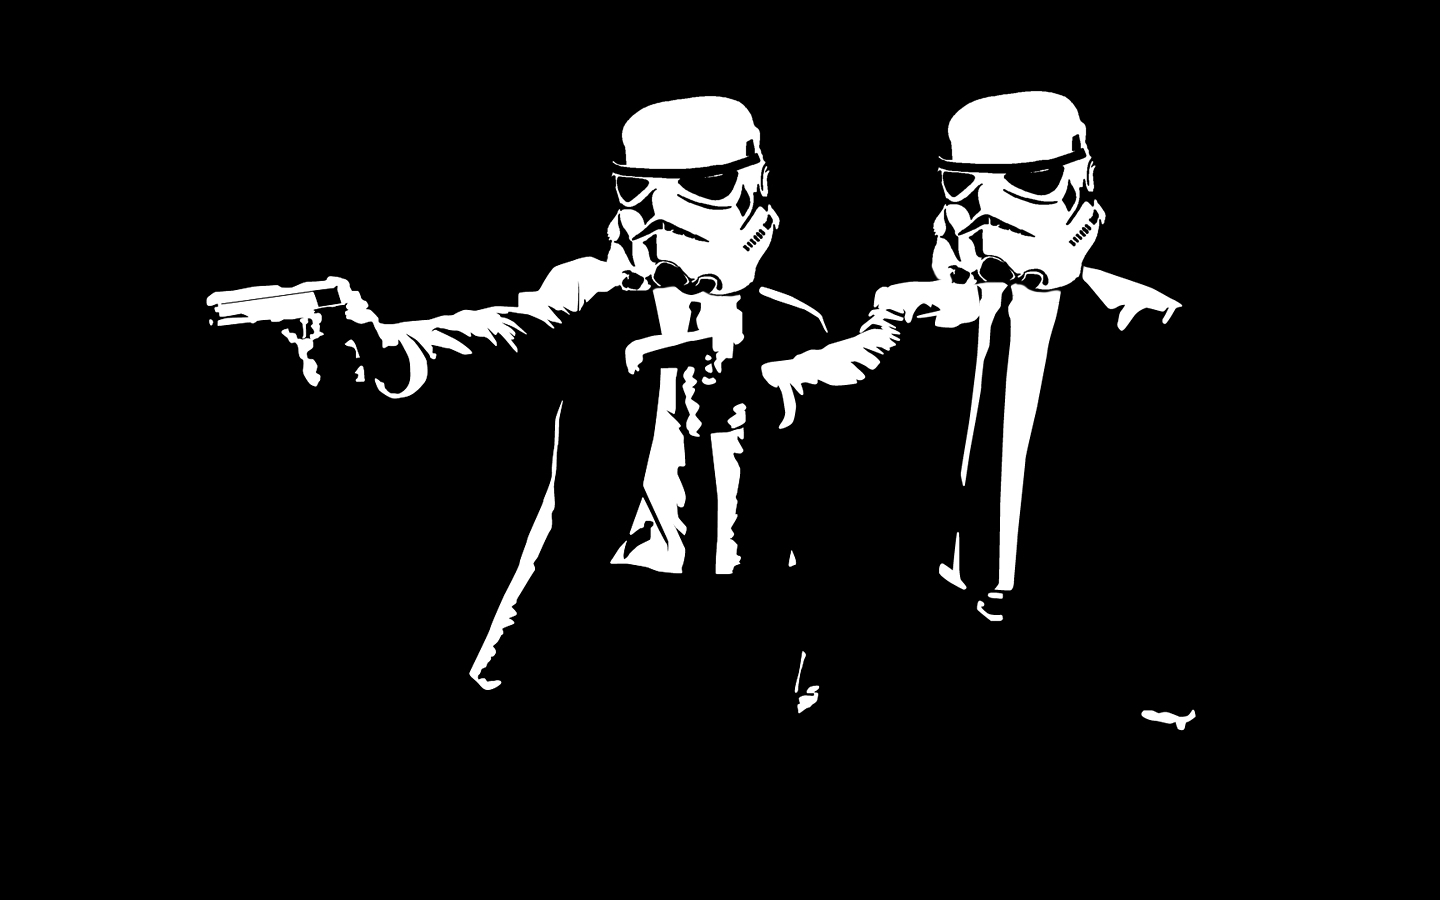 Movie stormtroopers pulp fiction HD Wallpaper